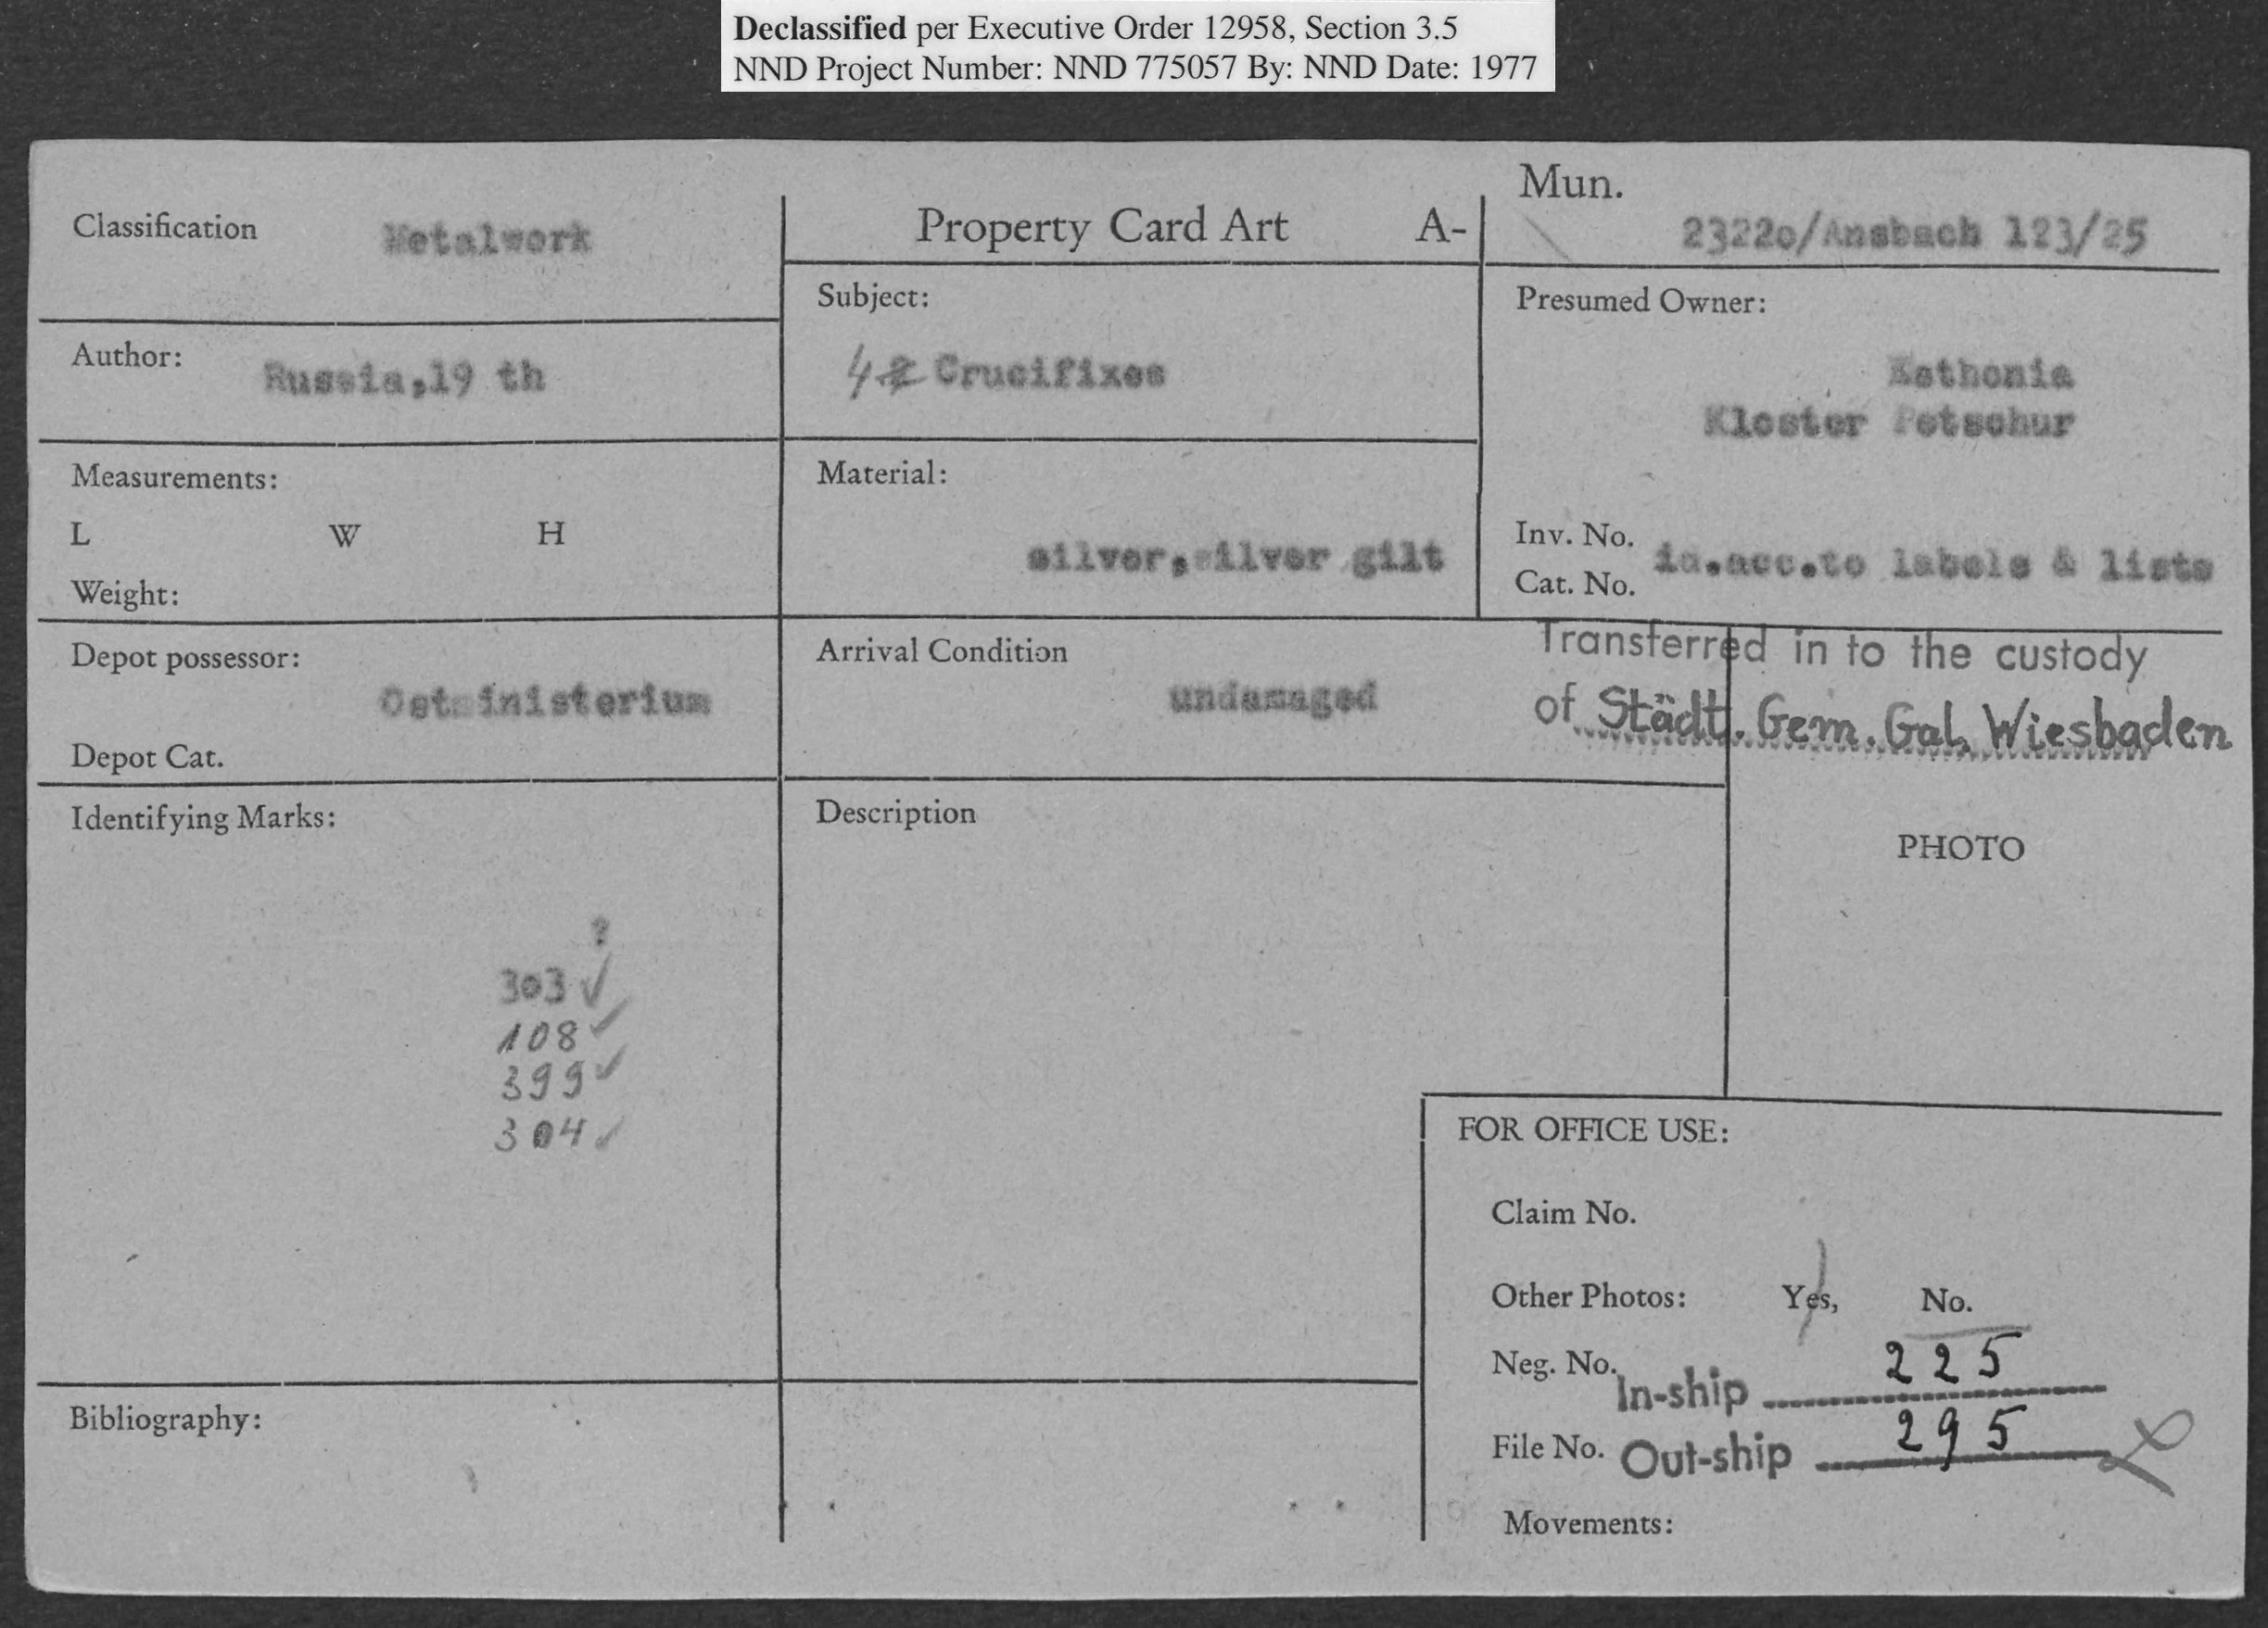 Metalwork: 4 Crucifixes, Property Card Number 23220/Ansbach 123/25